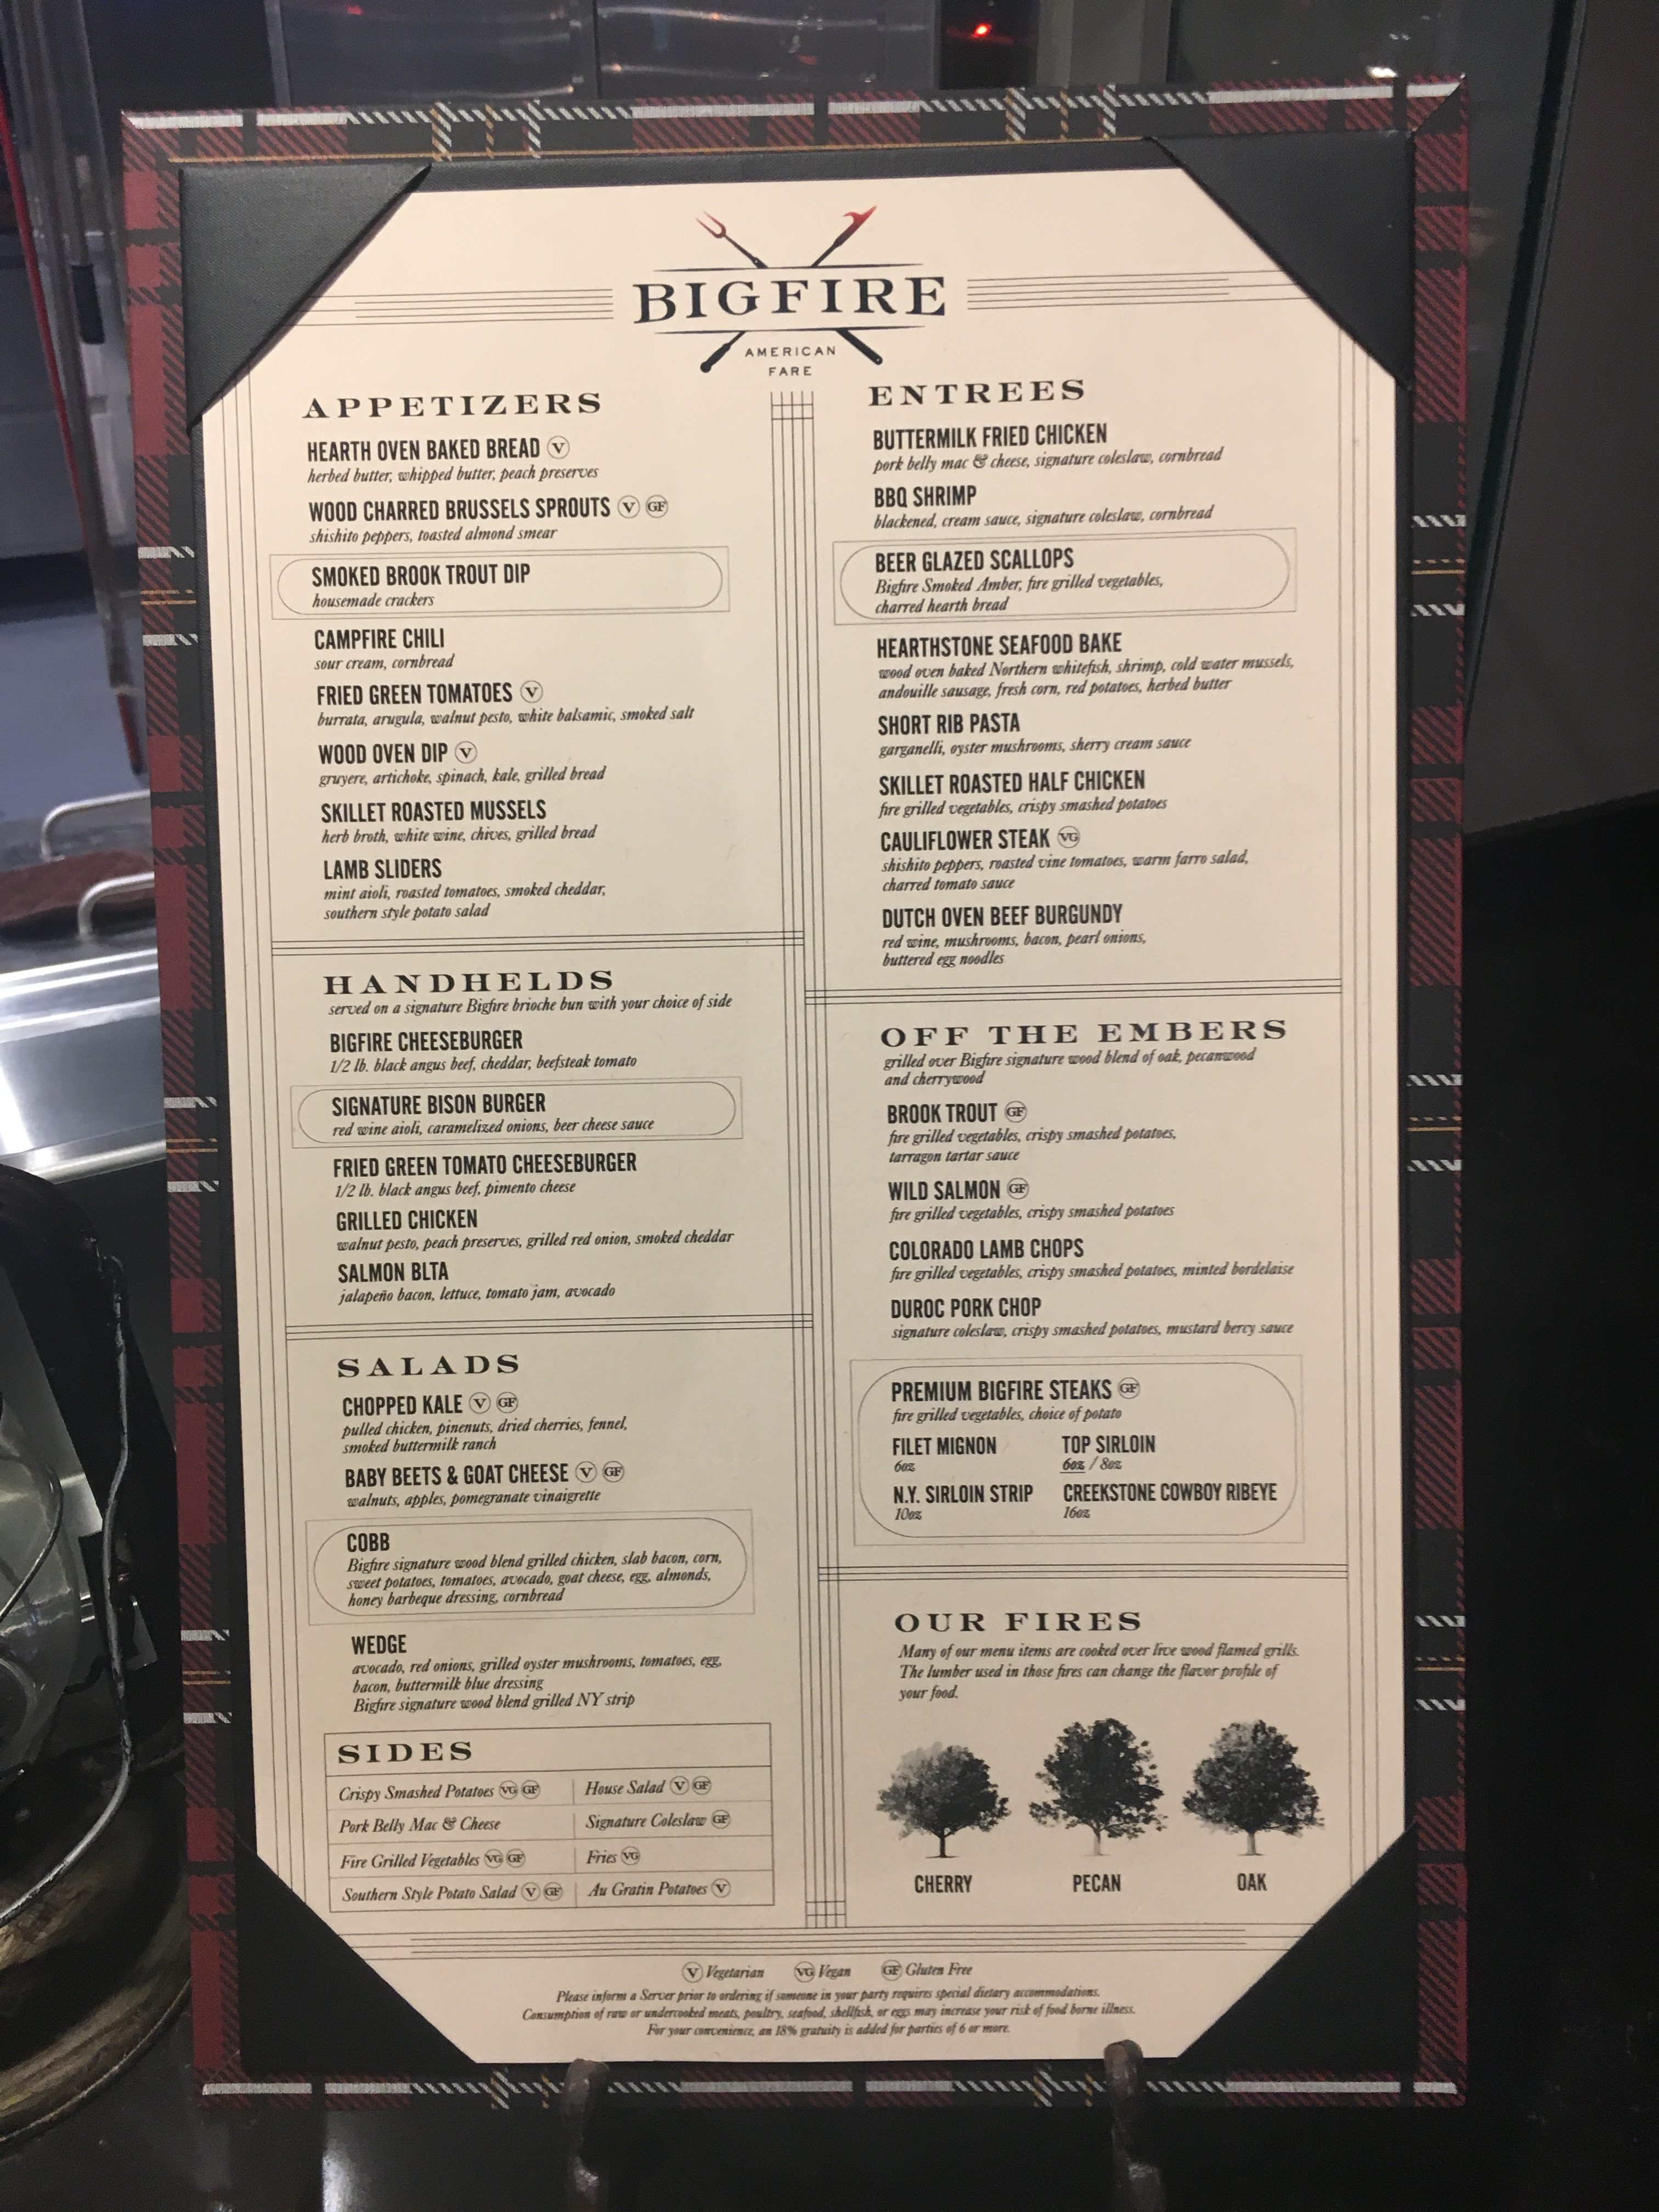 For an open-fire restaurant, Bigfire has many pescatarian and some vegetarian options.